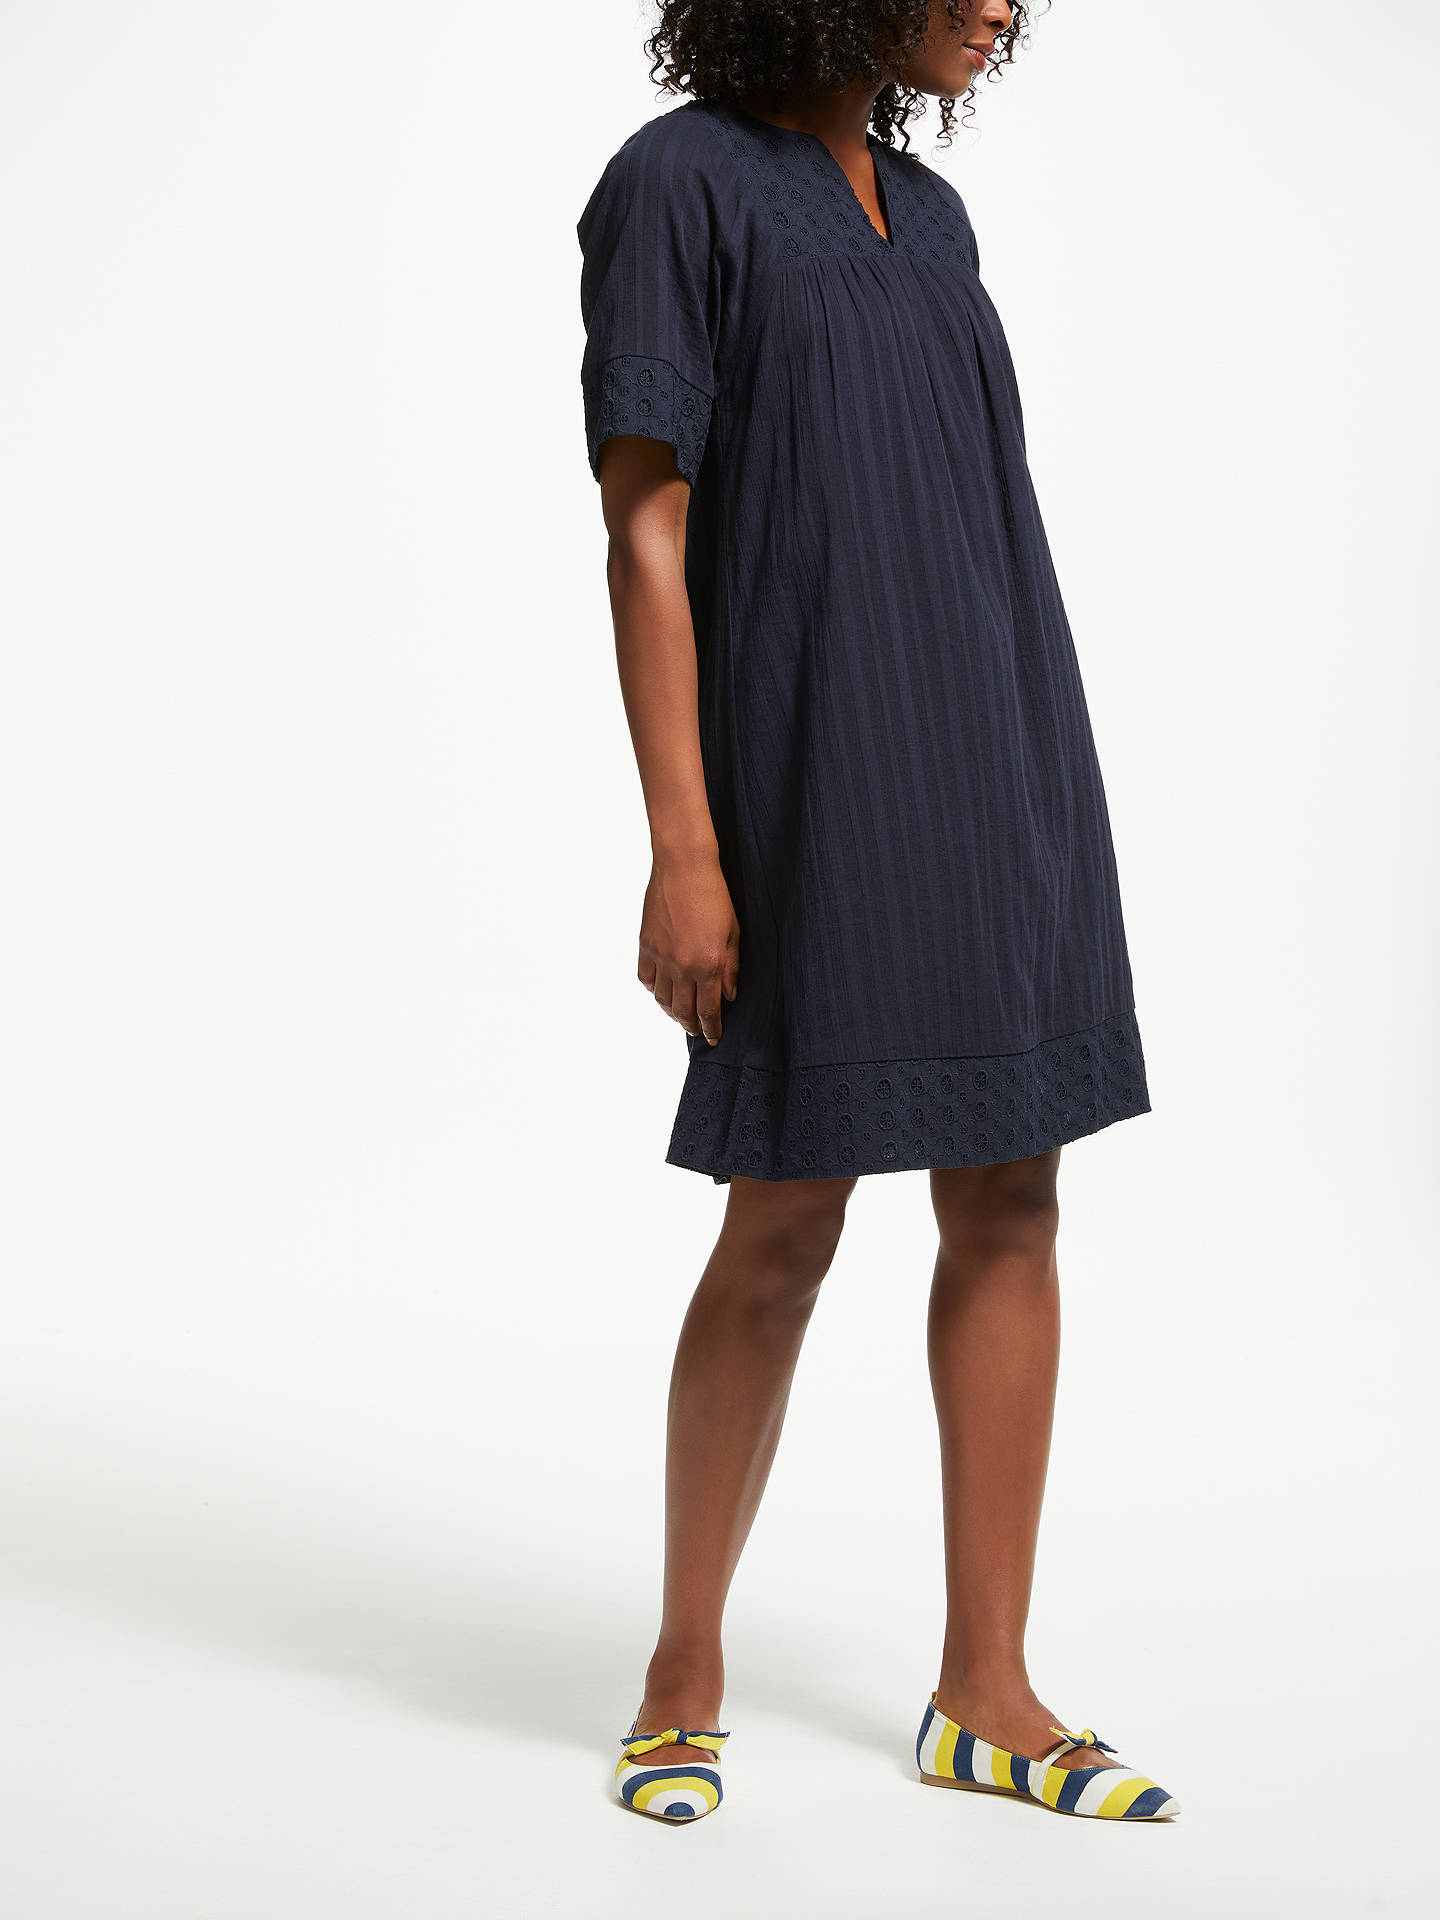 BuyBoden Helene Broderie Dress, Navy, 8 Online at johnlewis.com